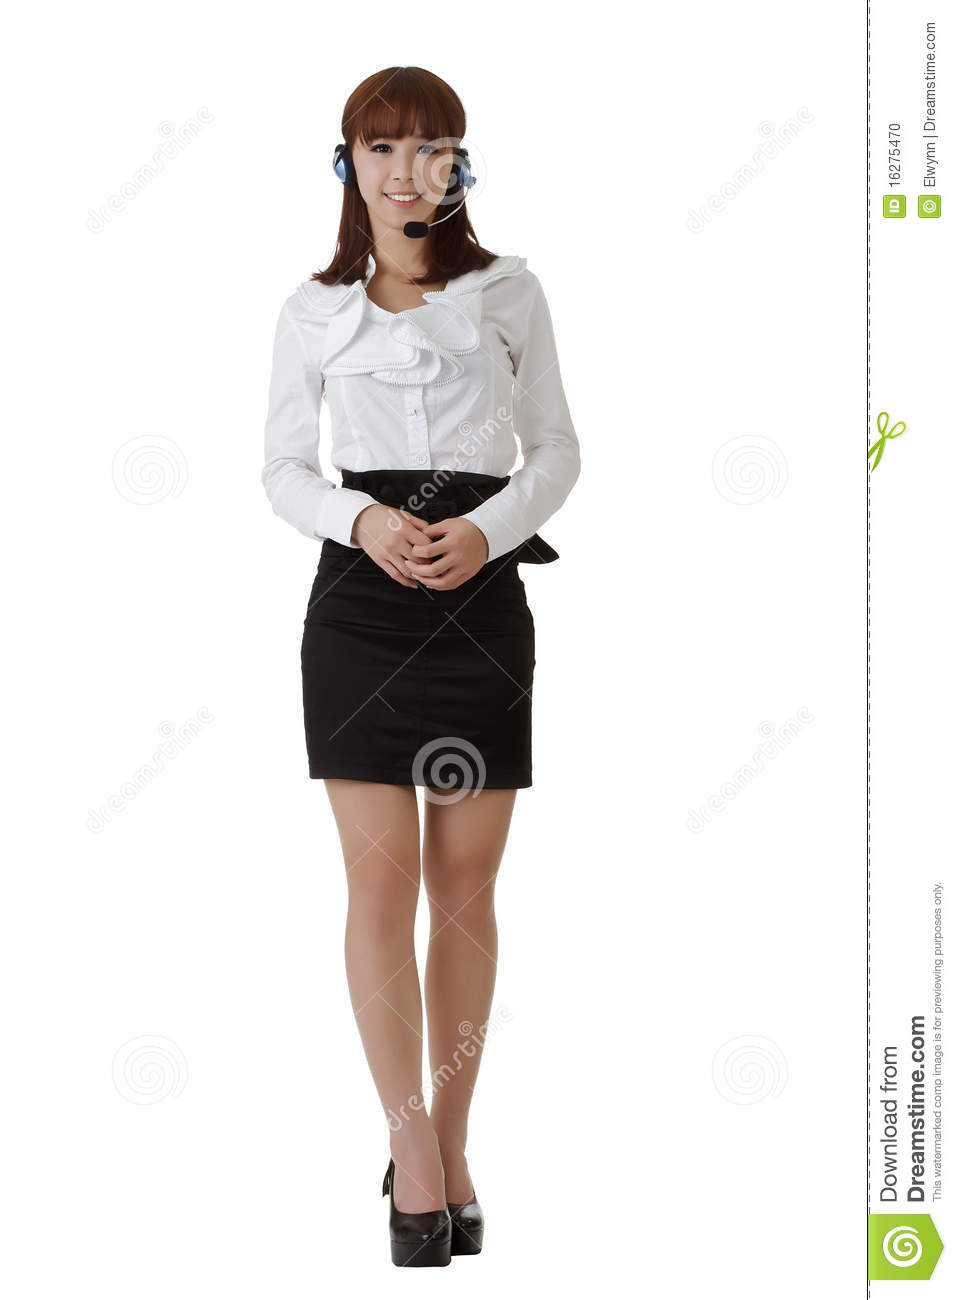 Attractive Asian secretary smiling, full length portrait isolated on ...